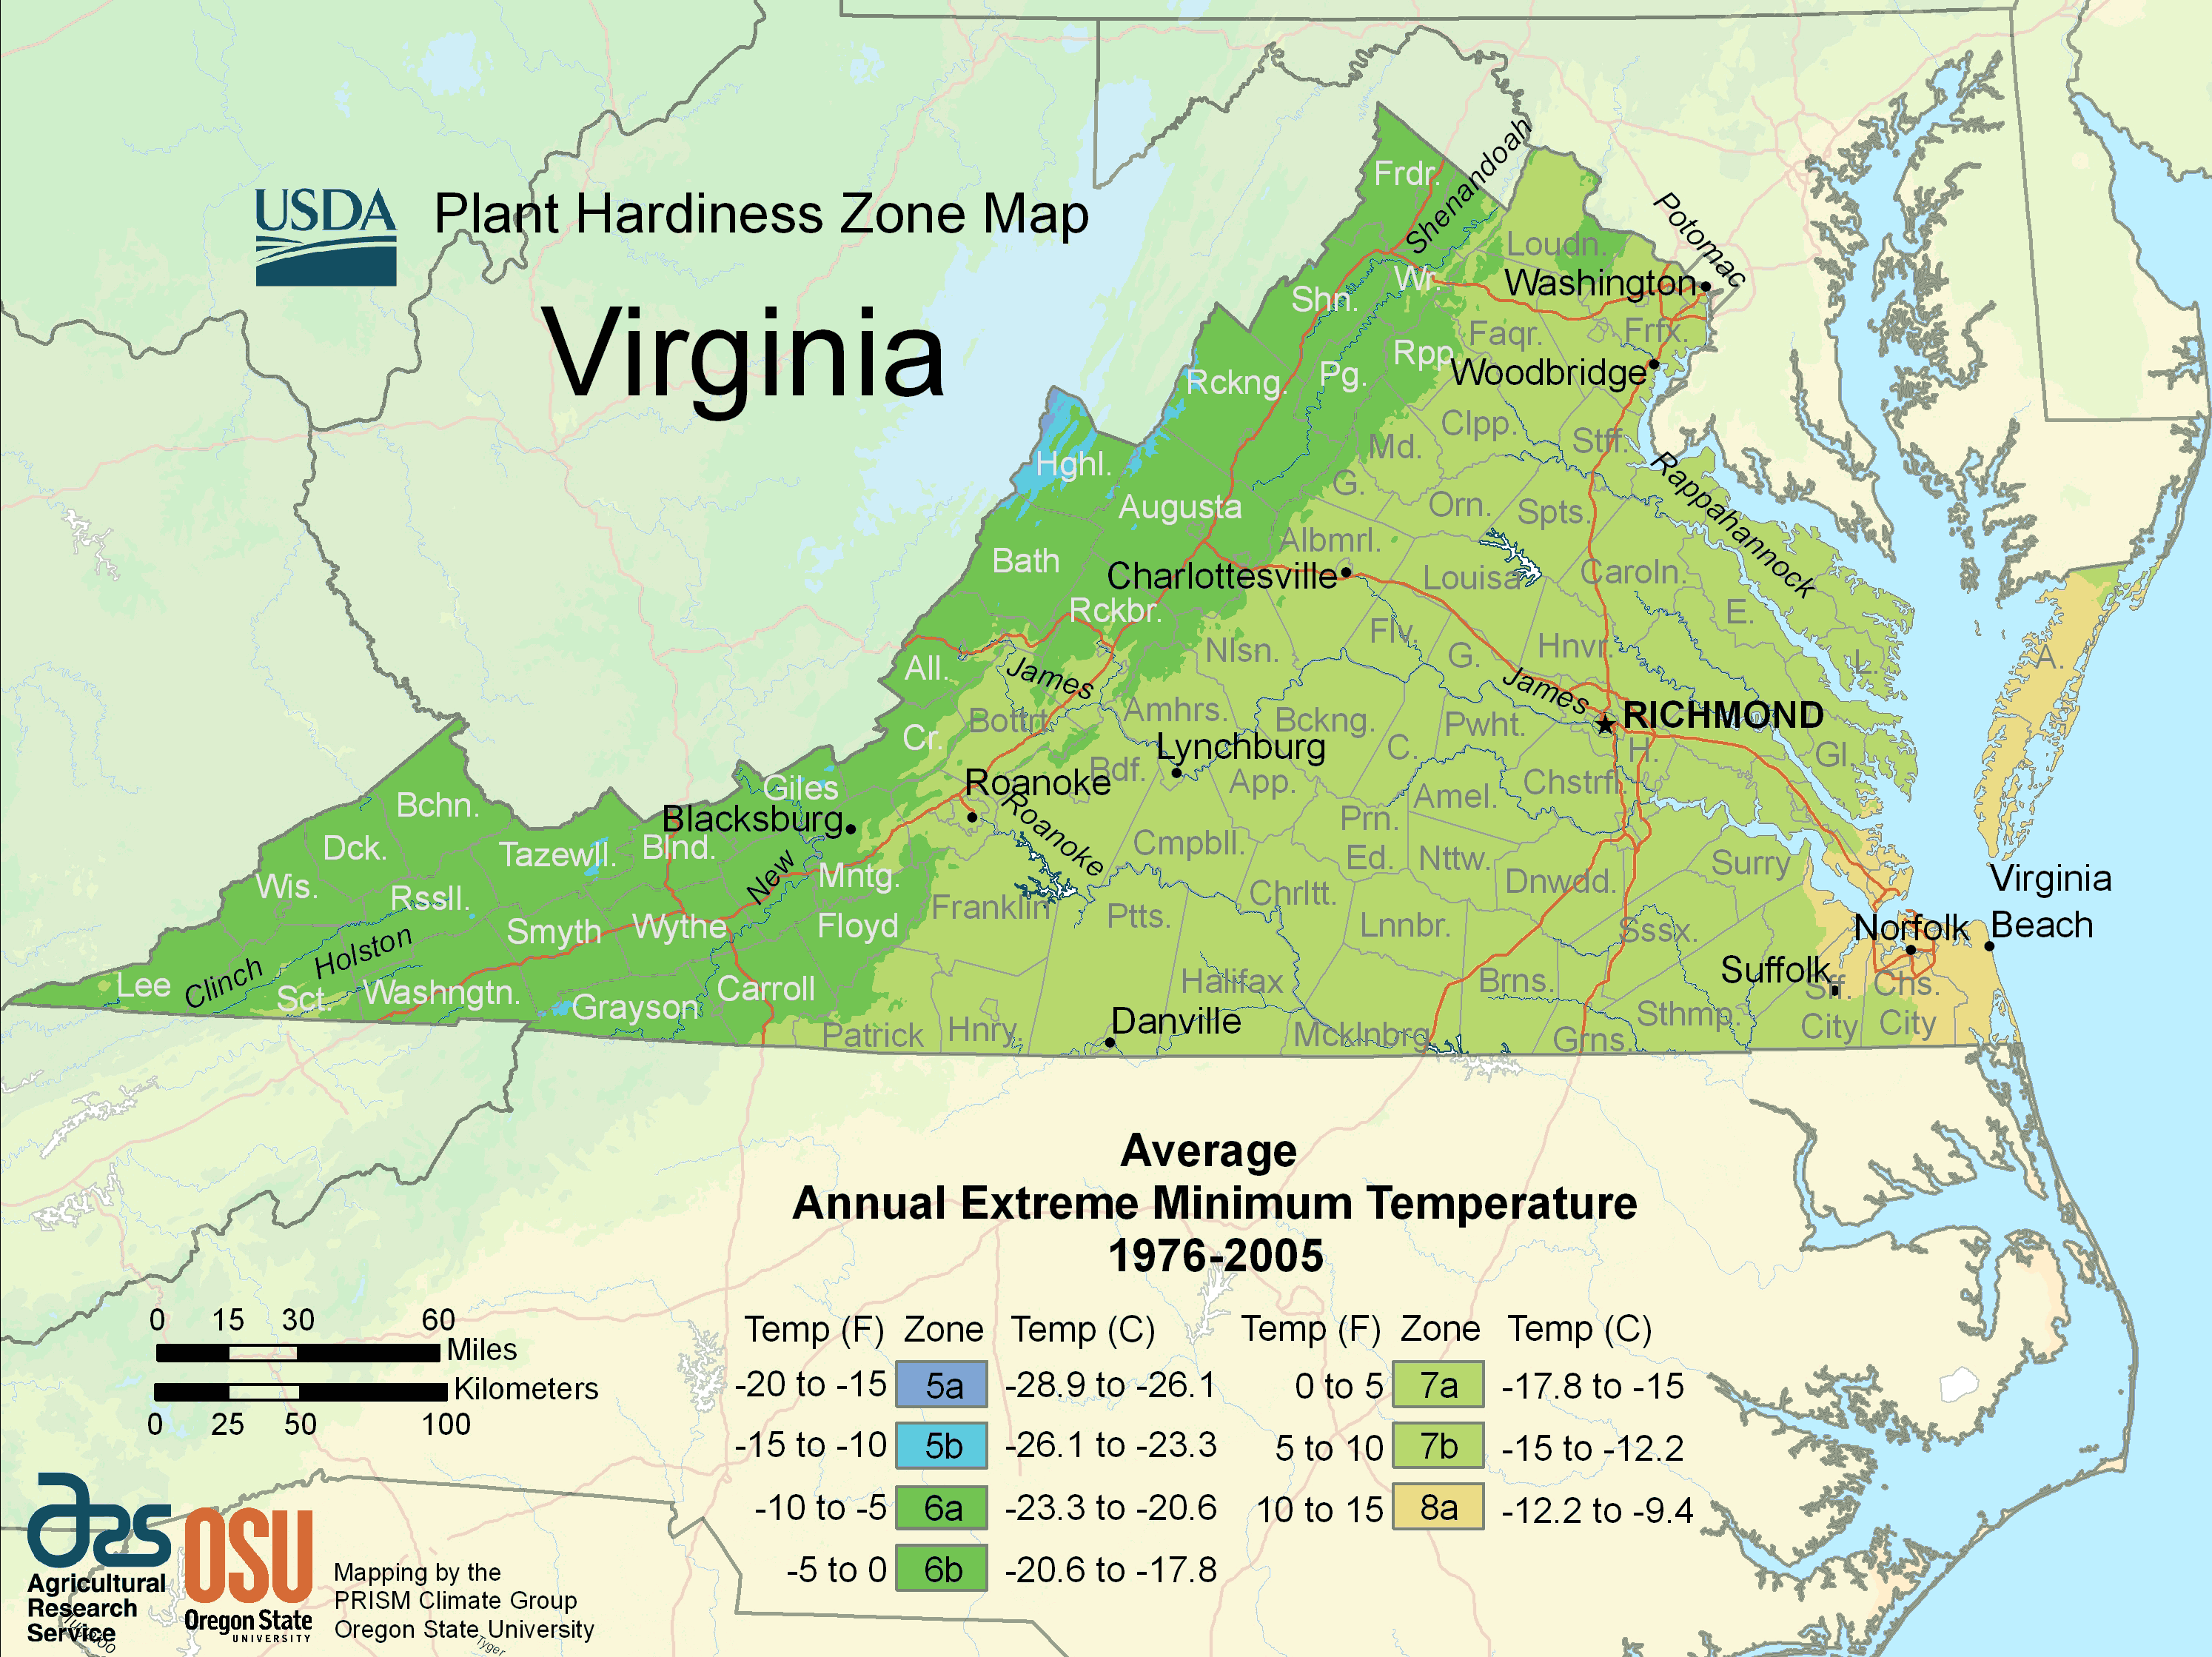 Virginia Plant Hardiness Zone Map Mapsofnet - Virginia physical map